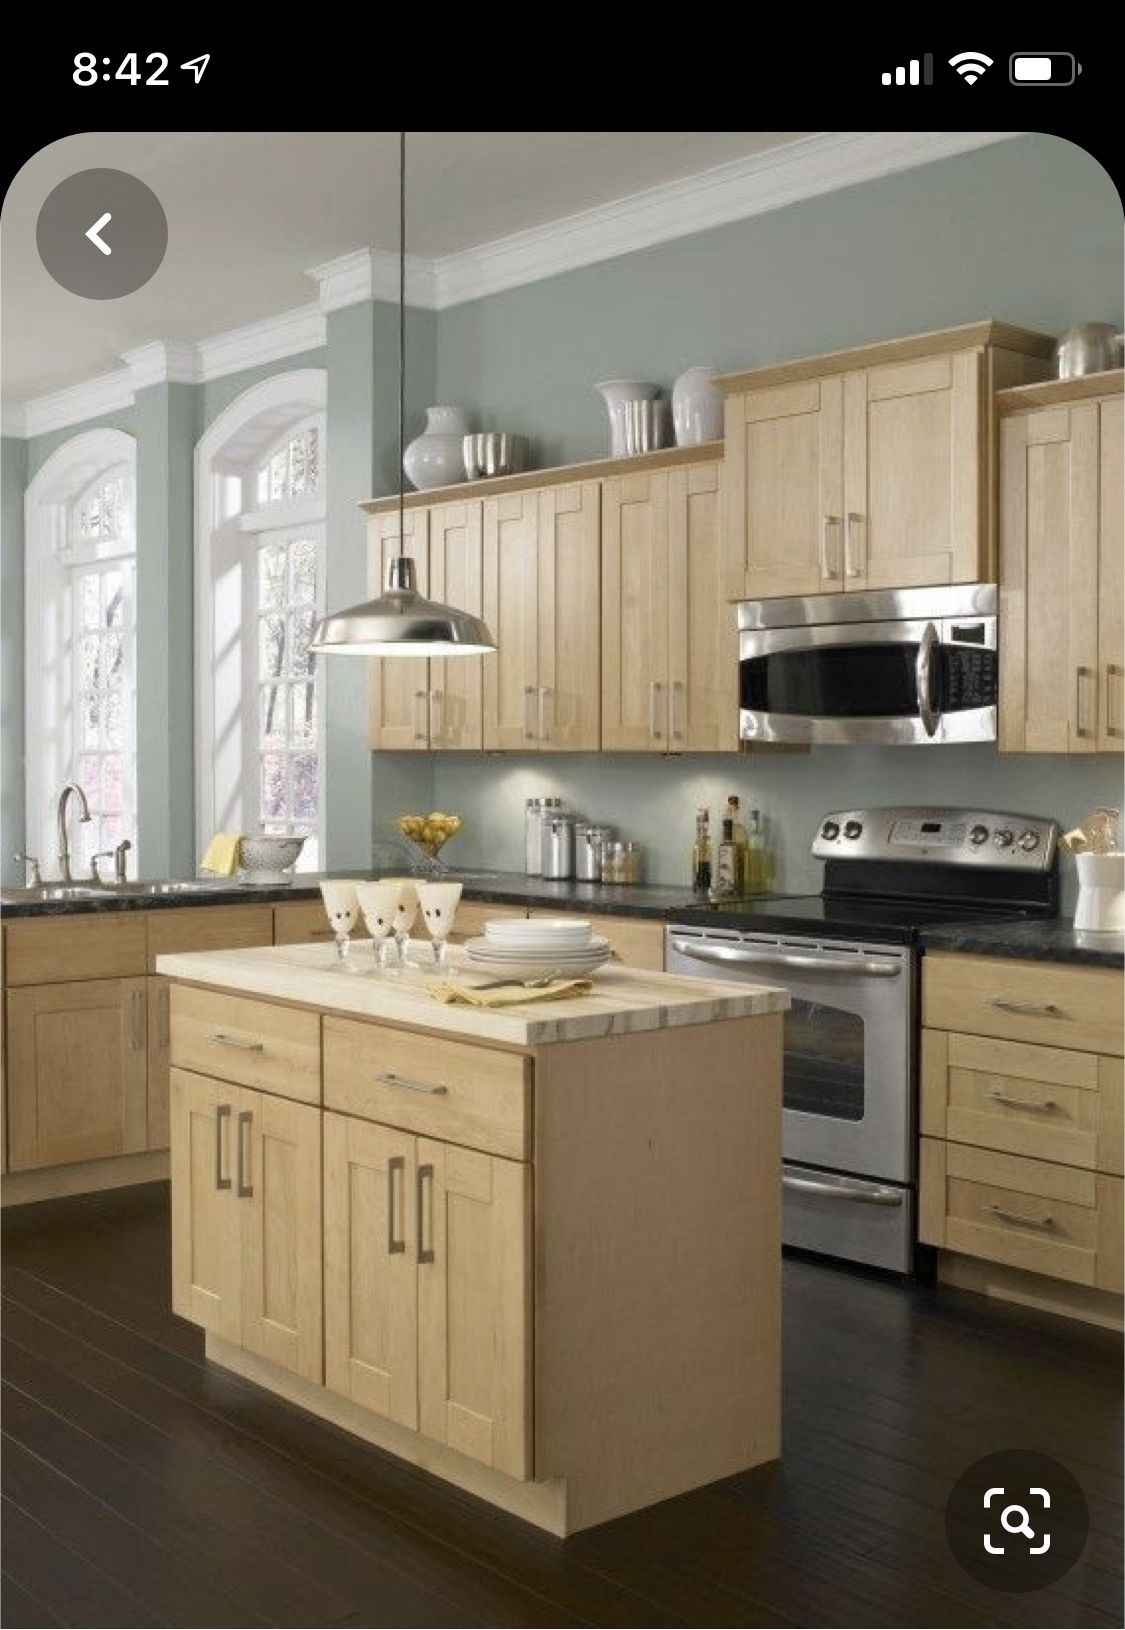 Pin By Arissa On Farmhouse Decor In 2020 Maple Kitchen Cabinets Best Kitchen Colors Light Wood Cabinets